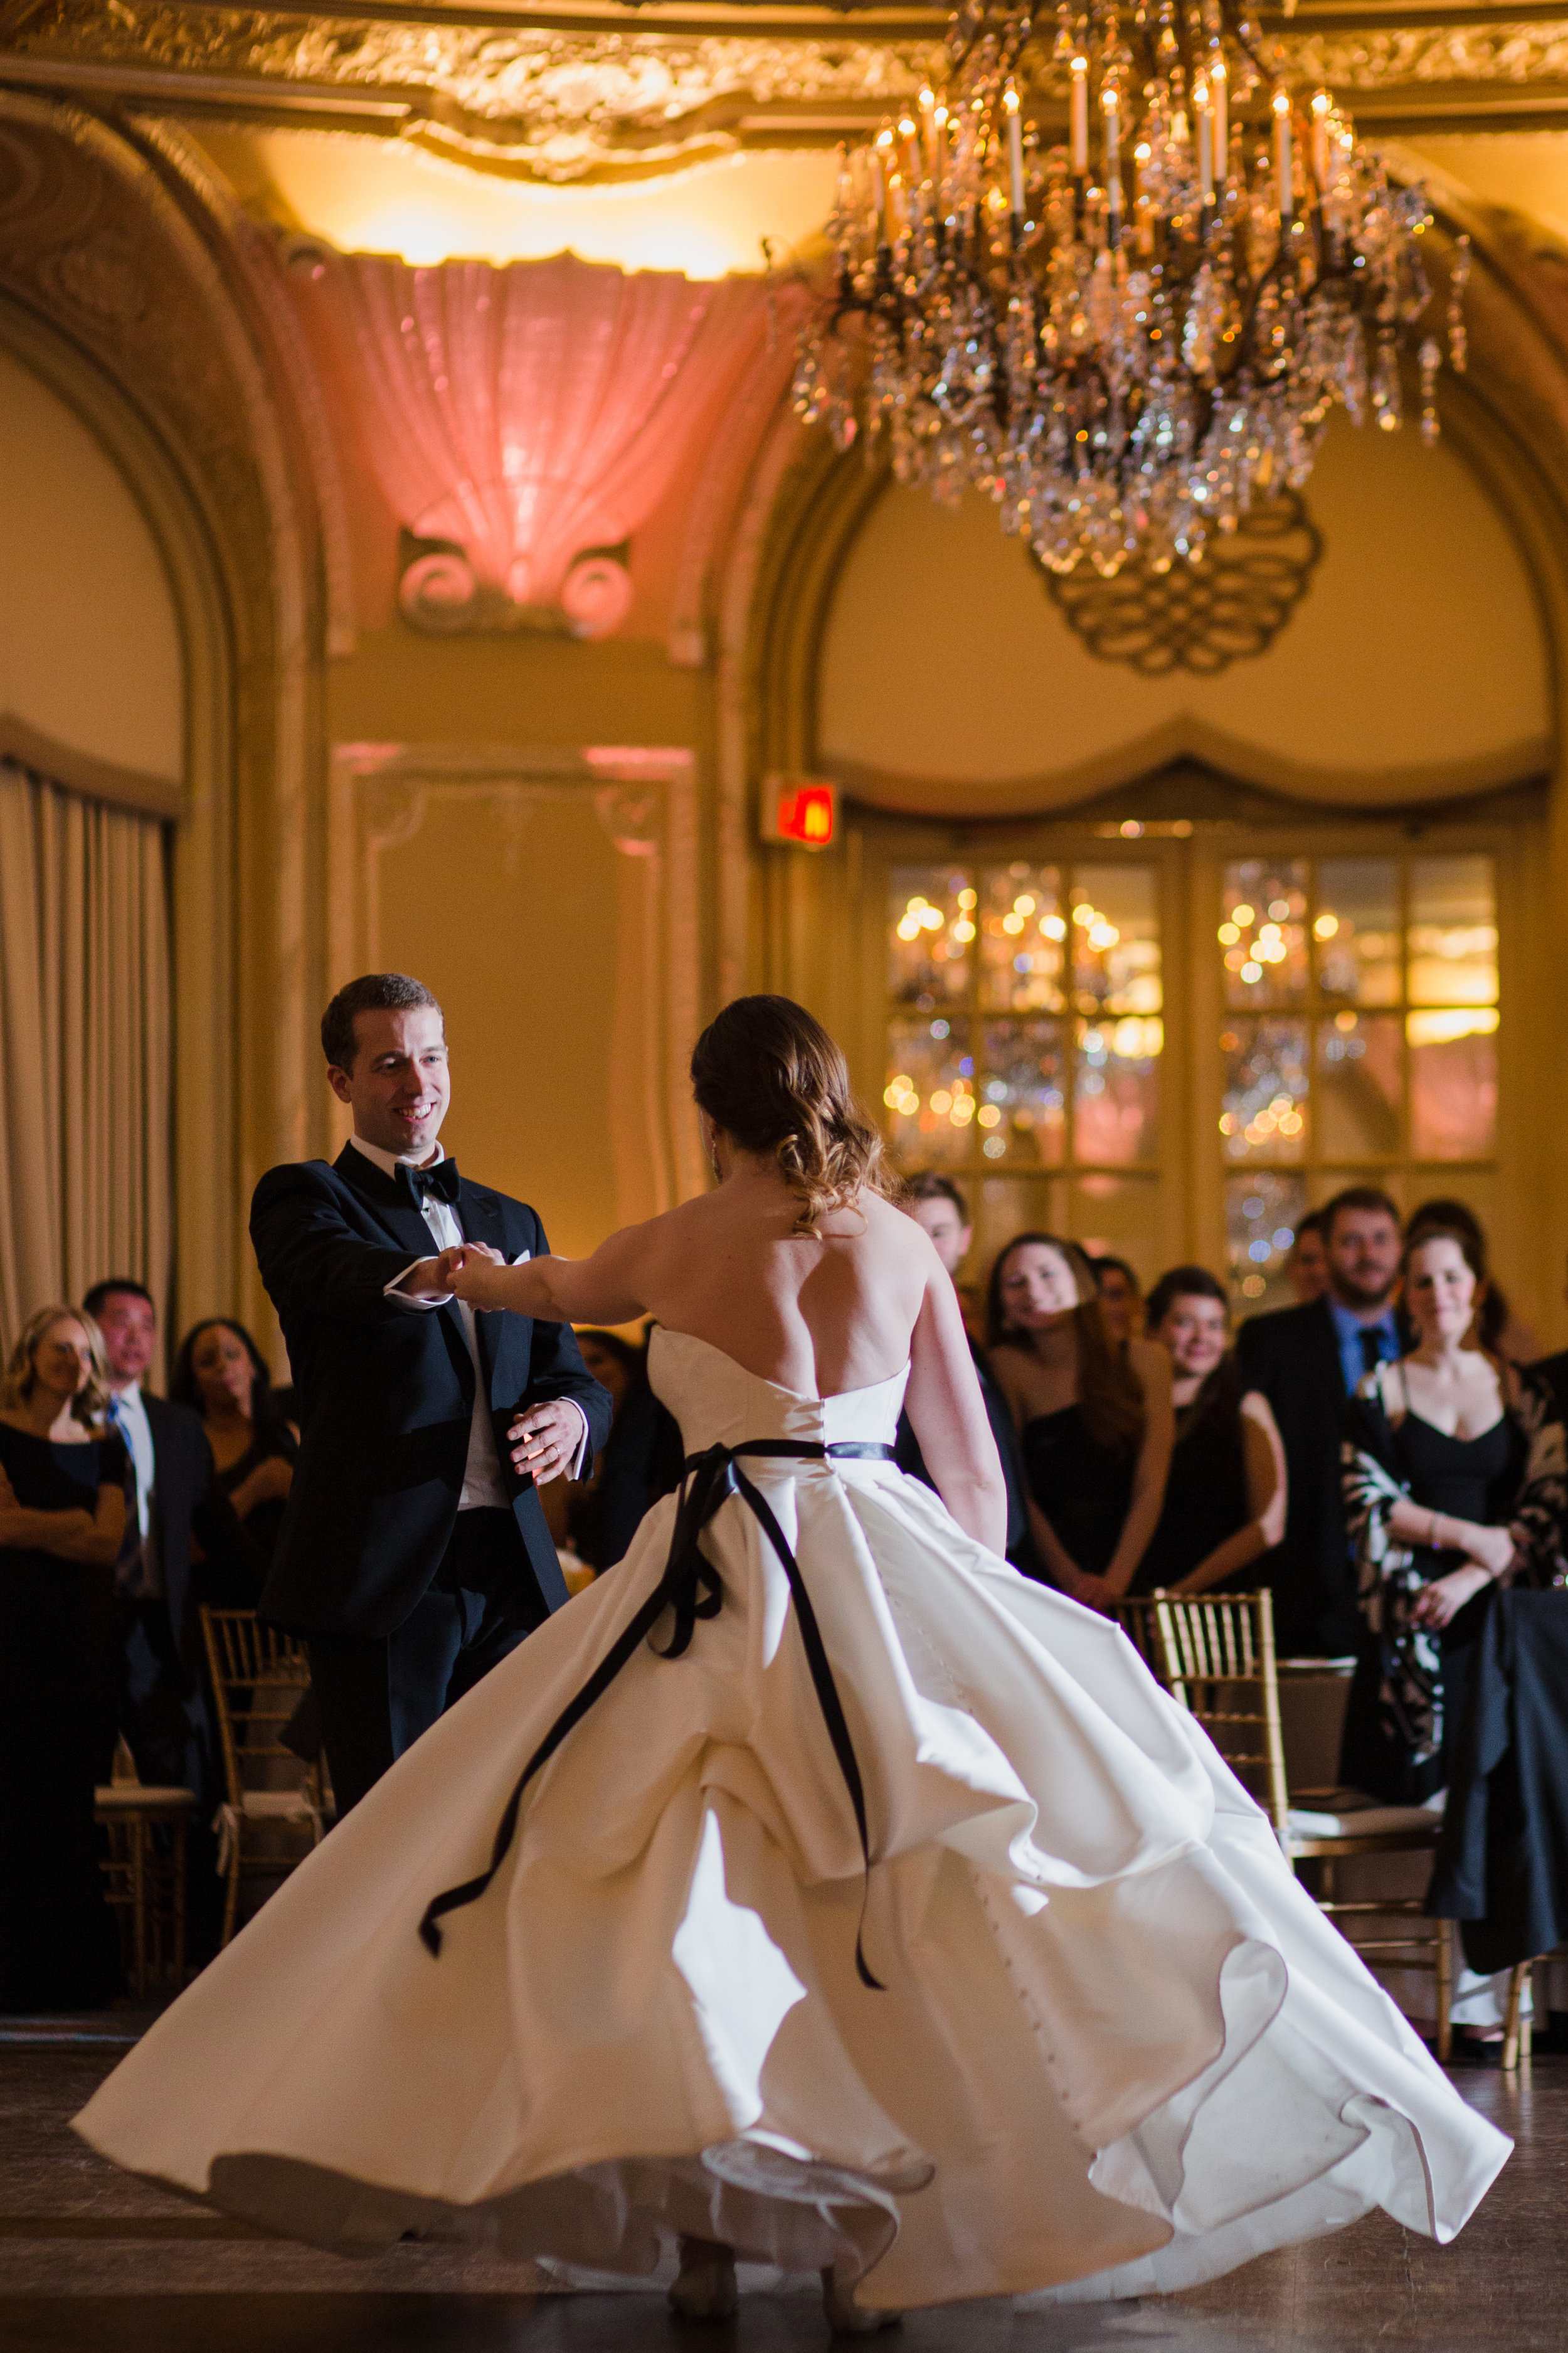 Fairmont-copley-plaza-wedding-photo-44.JPG